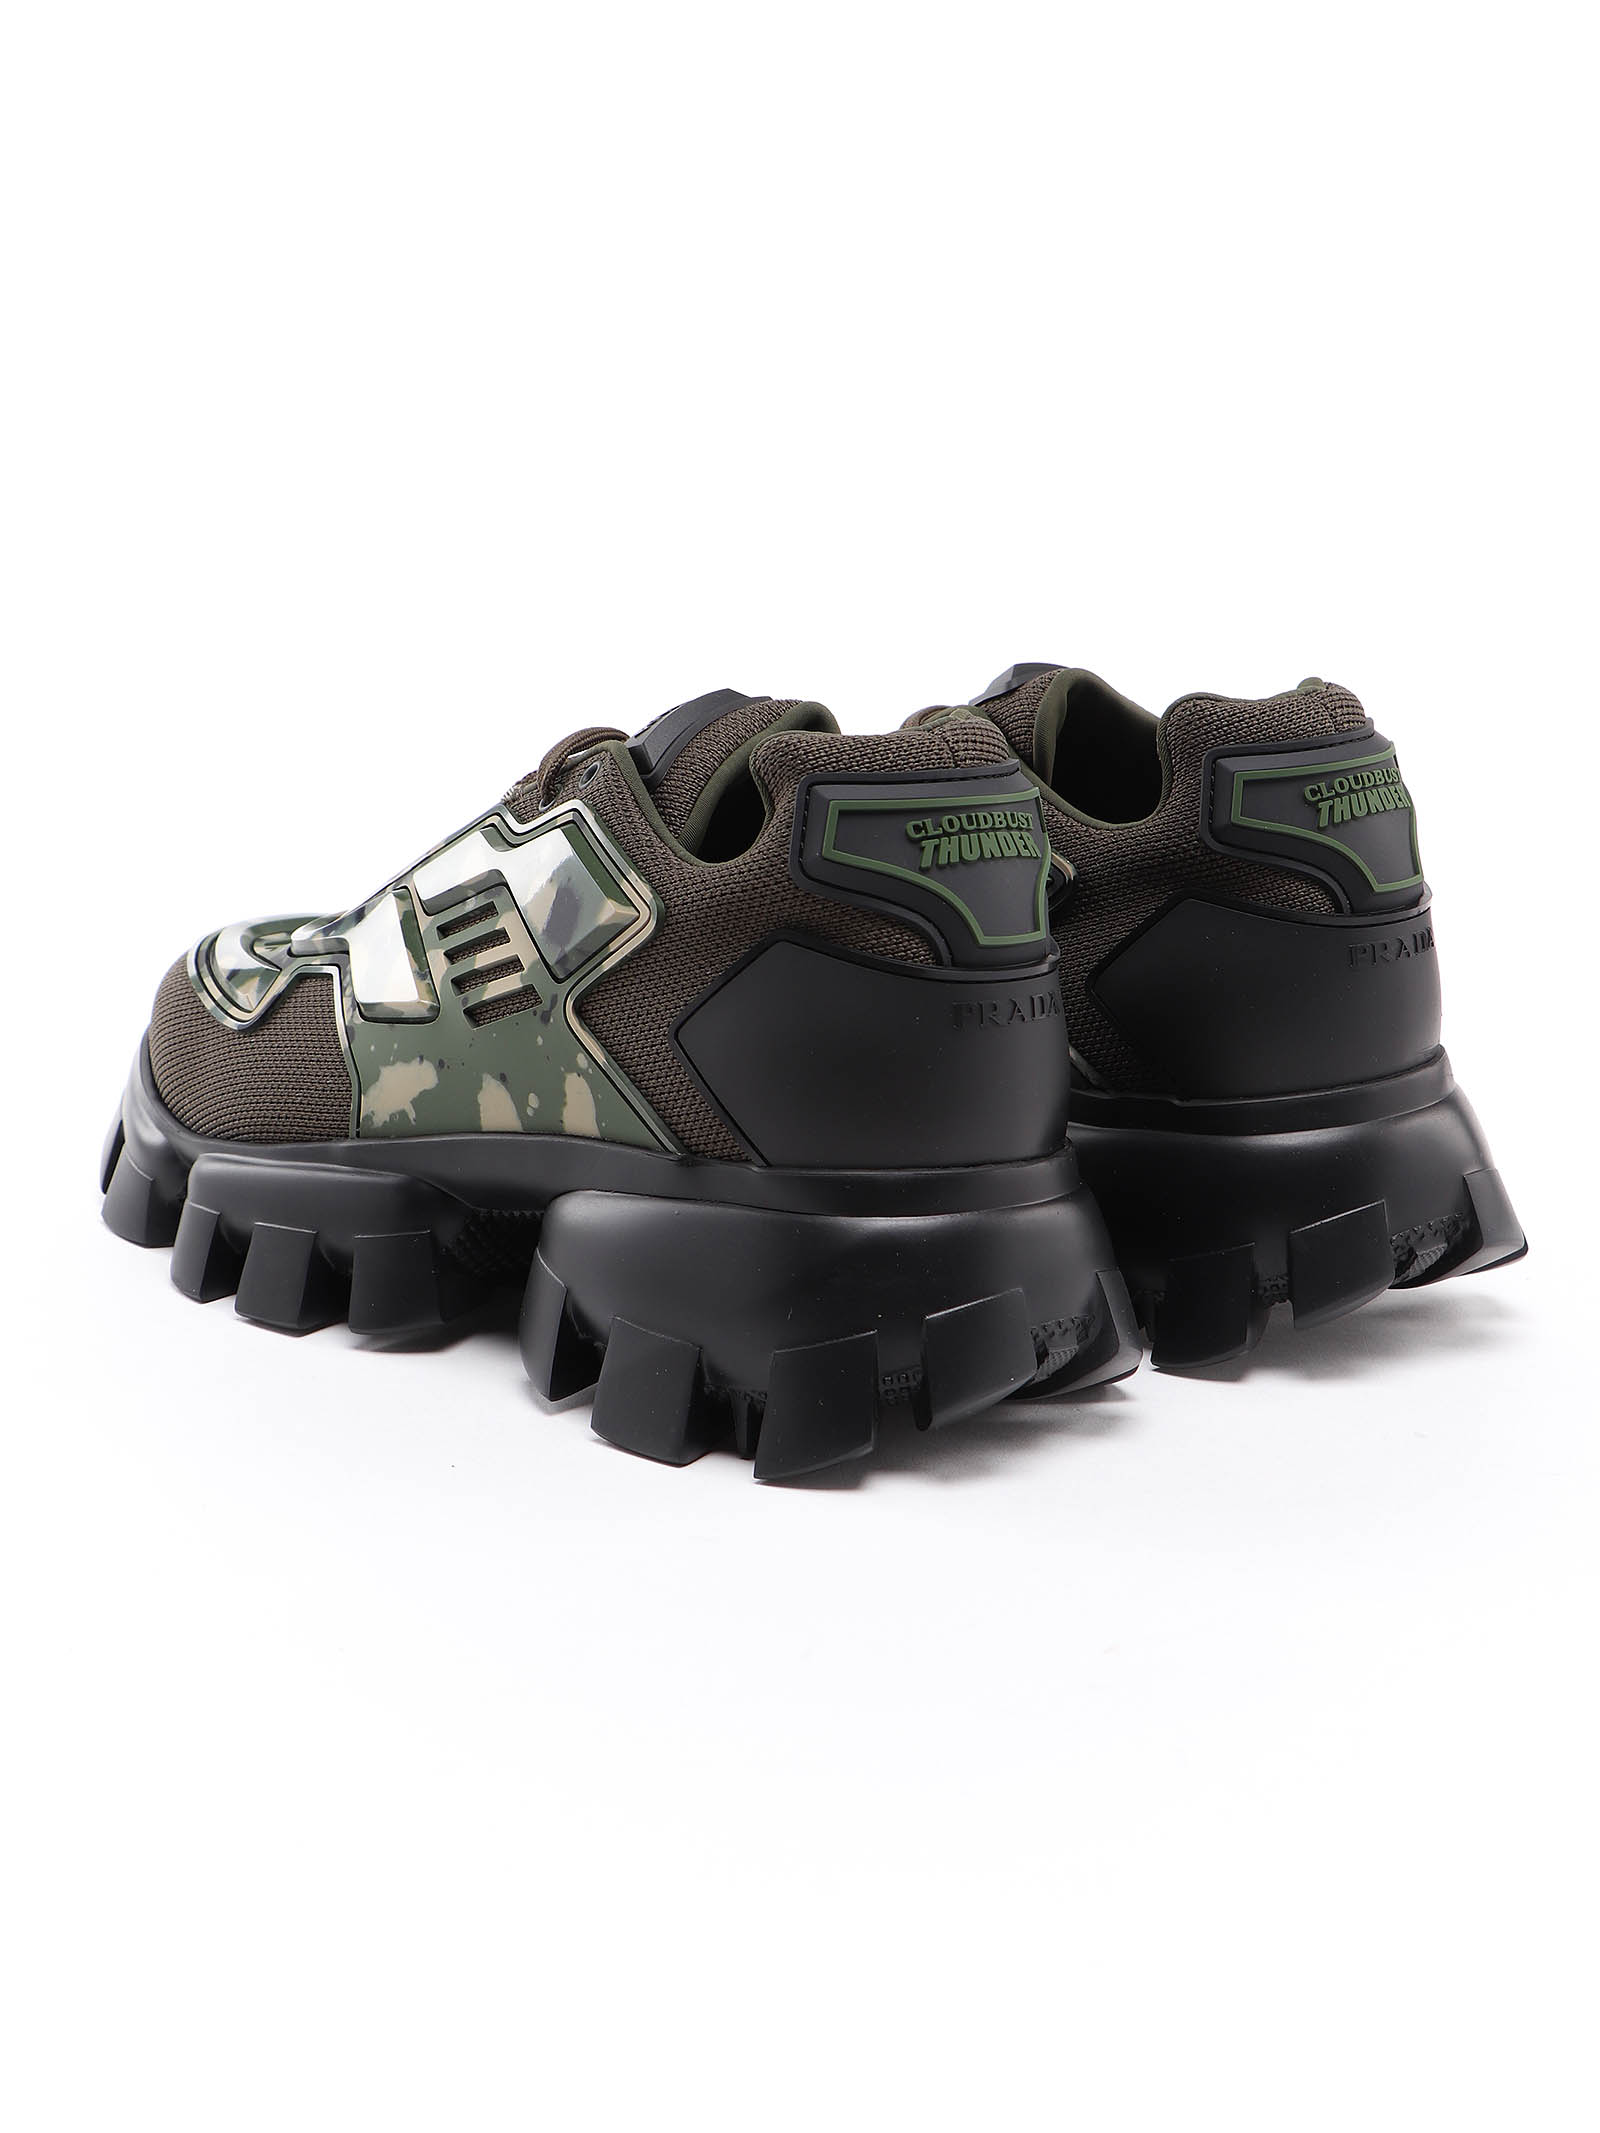 Picture of Prada | Cloudbust Thunder Sneaker